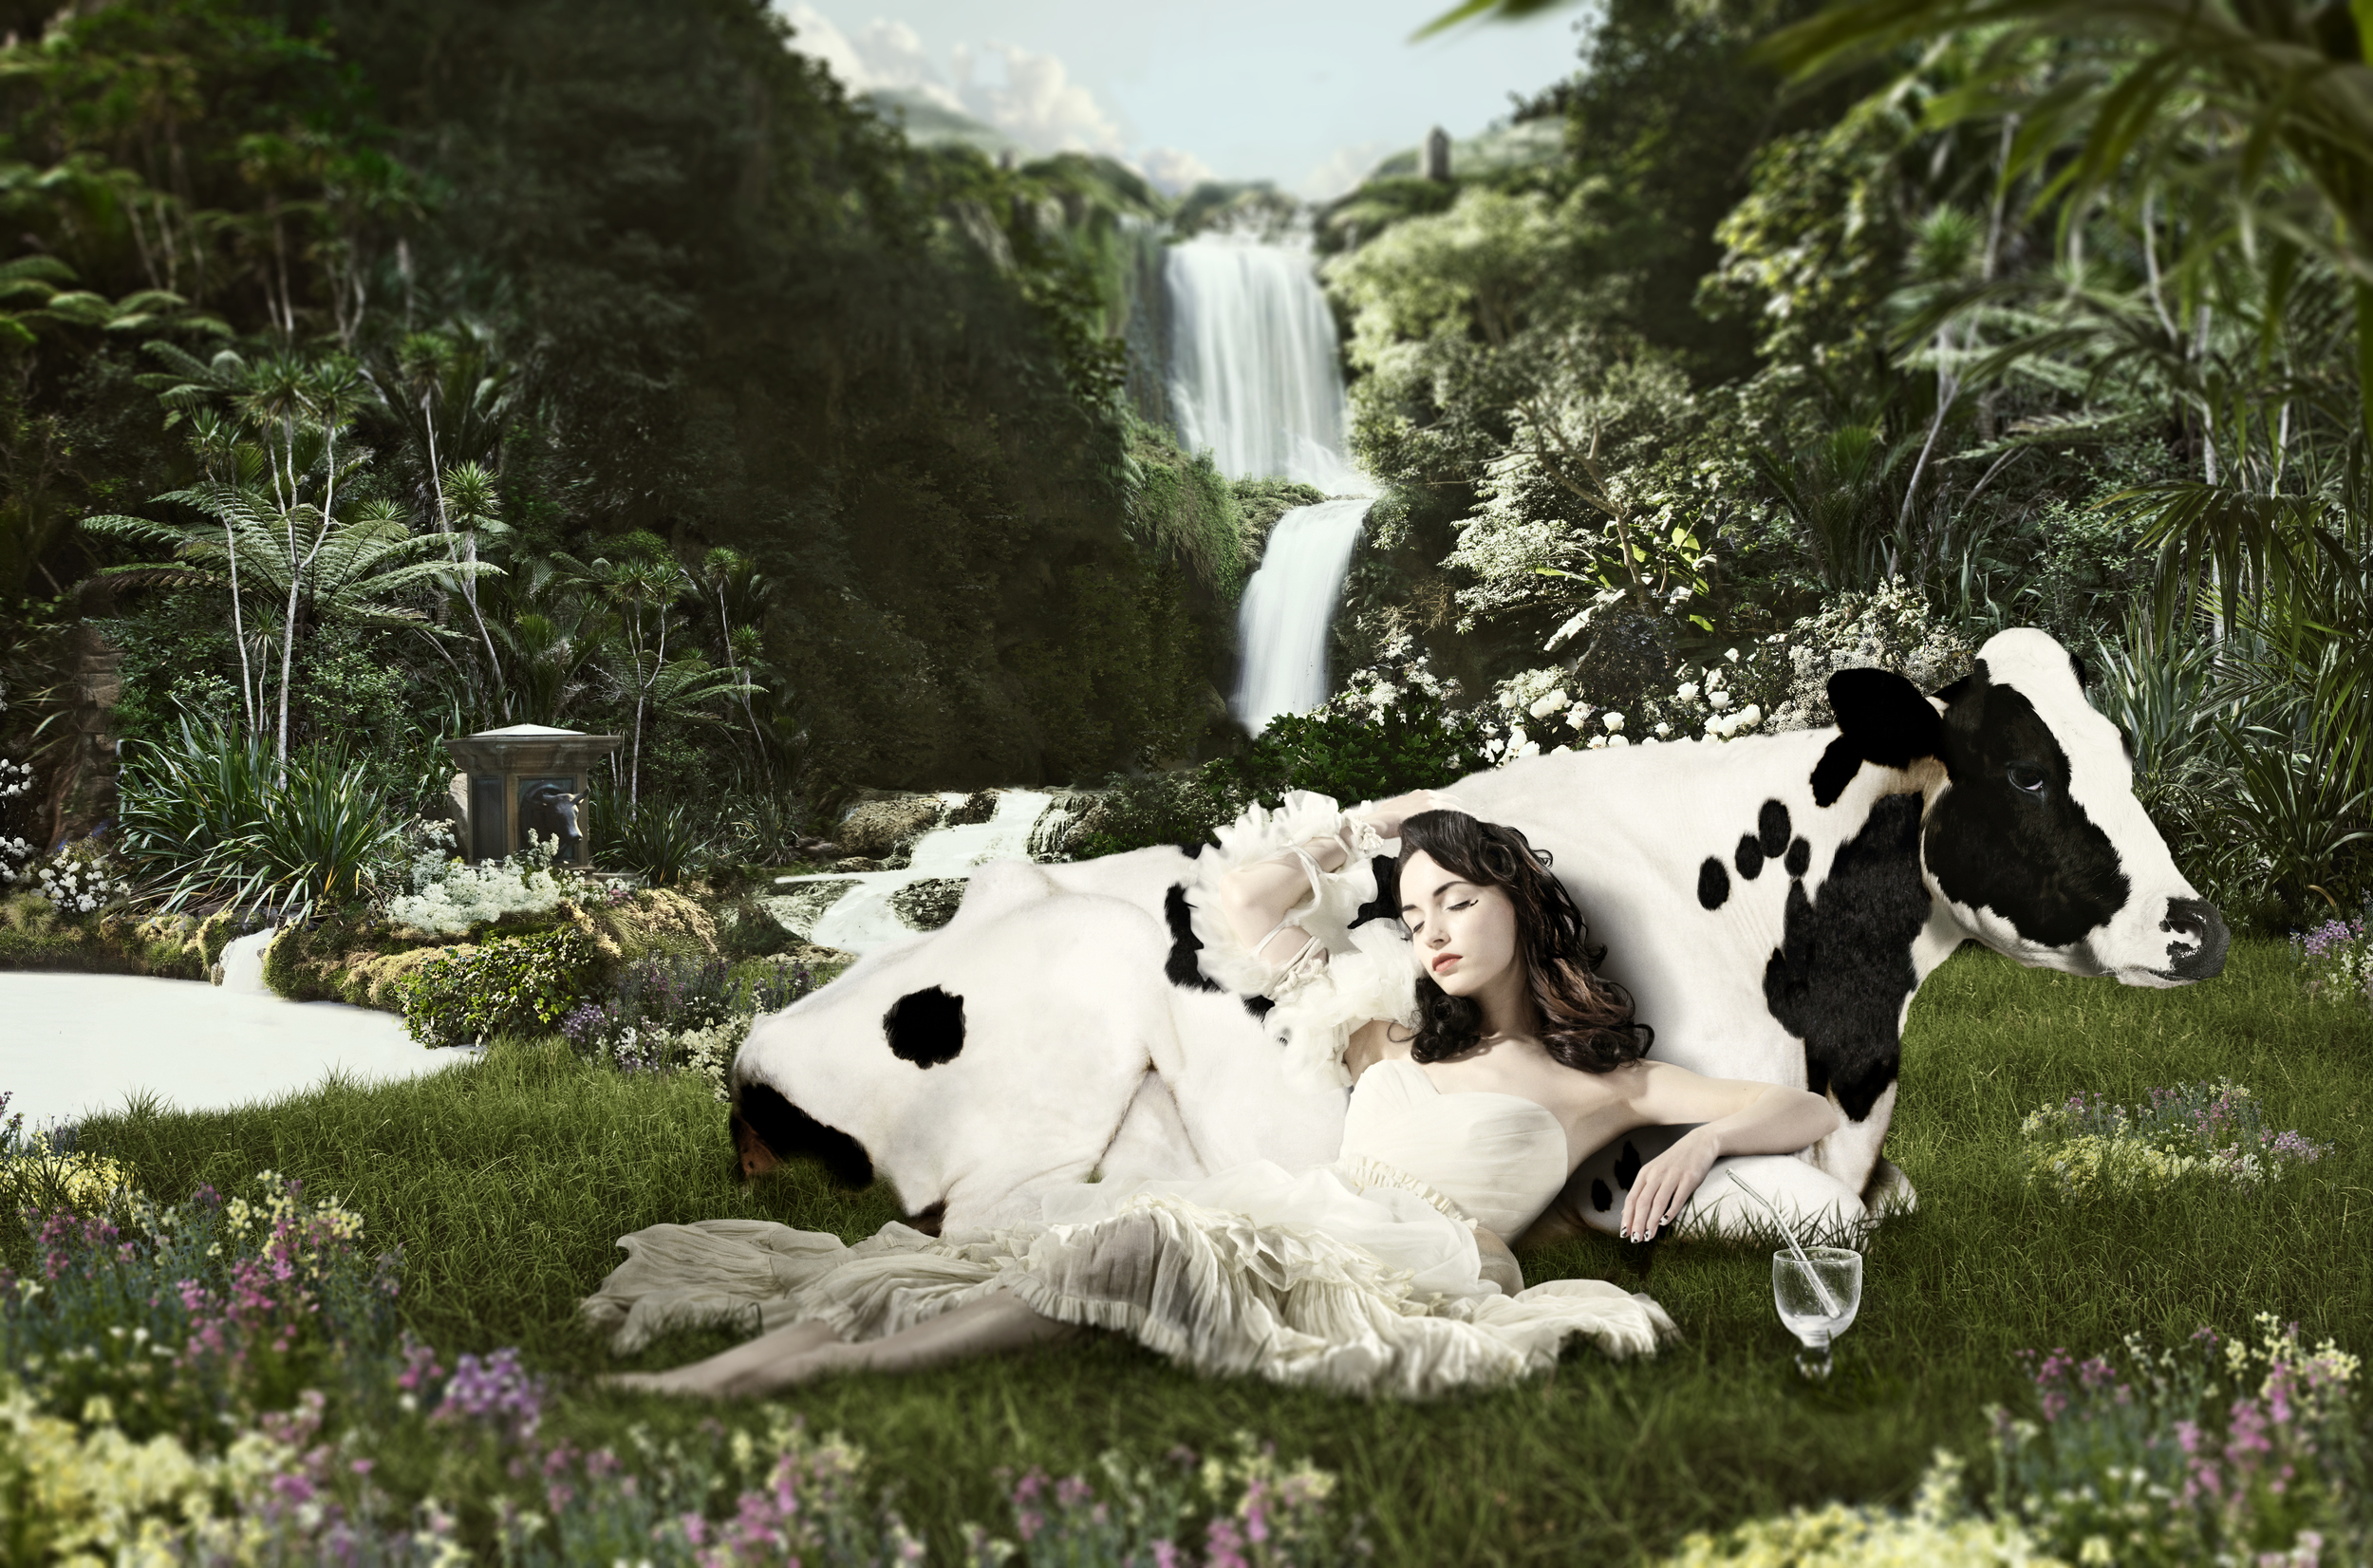 TECHNIQUE - I feel like this image most closely resembles how we could approach the Tasty Bite shoot. First the stock image of the cow was acquired, then the backdrop was created using my personal library, and then in studio we photographed the woman in the scene.